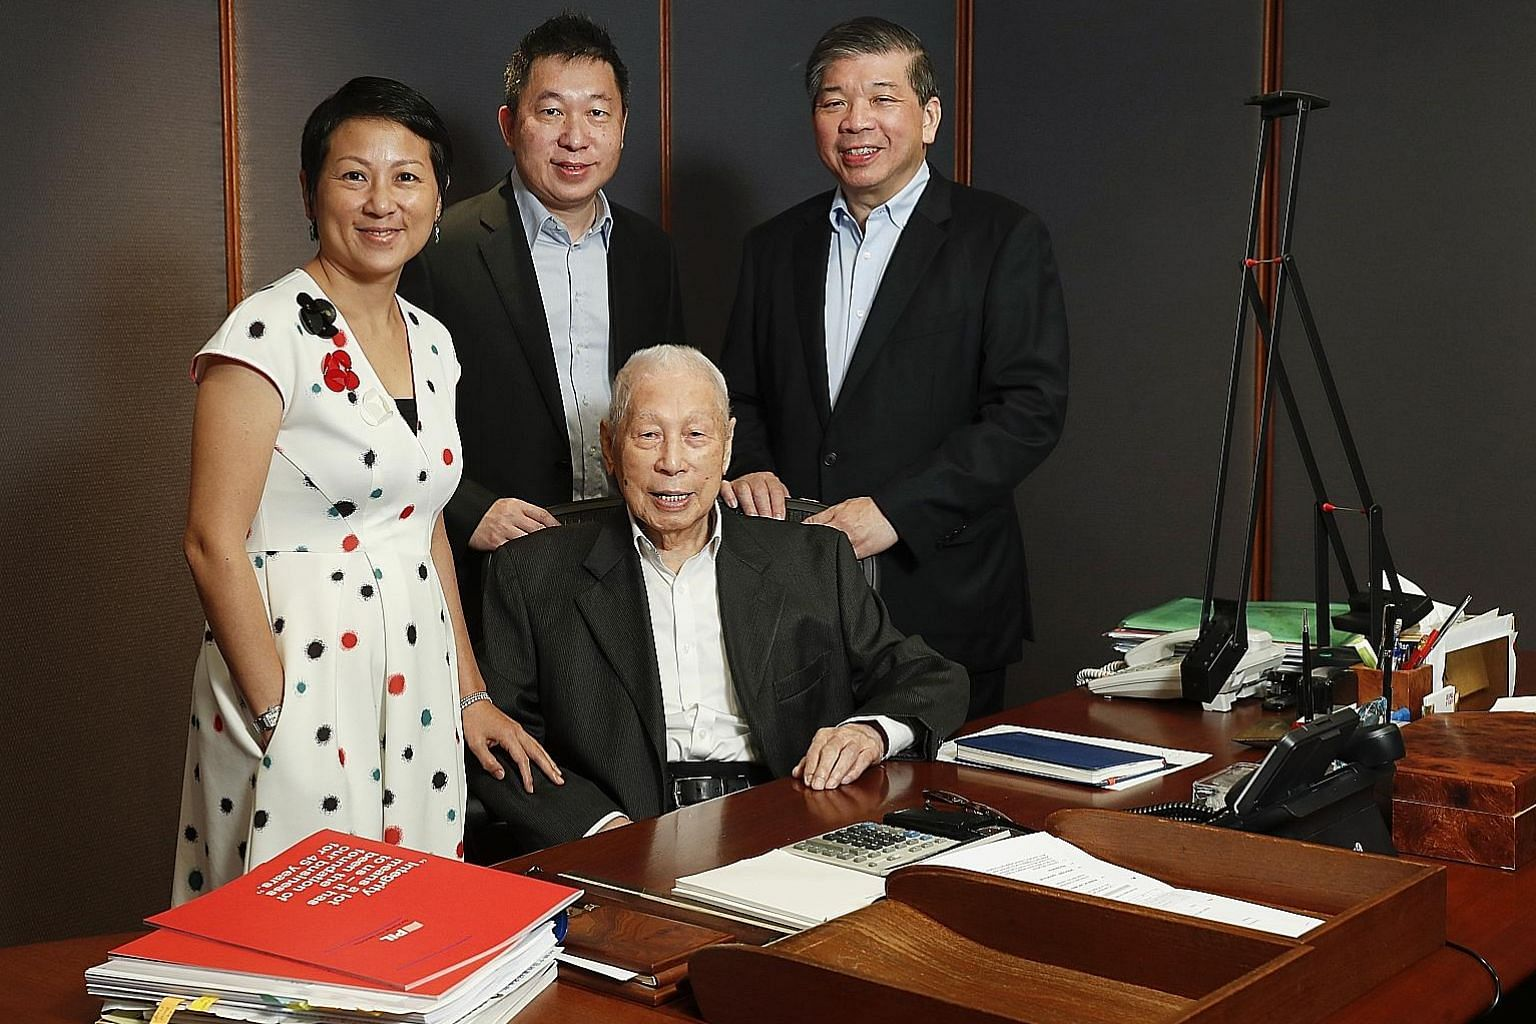 Mr Teo Woon Tiong pictured in 2018 with the second-generation business leaders of Pacific International Lines: (from left) executive director of corporate development Lisa Teo, executive director of the fleet division Teo Choo Wee and executive chair